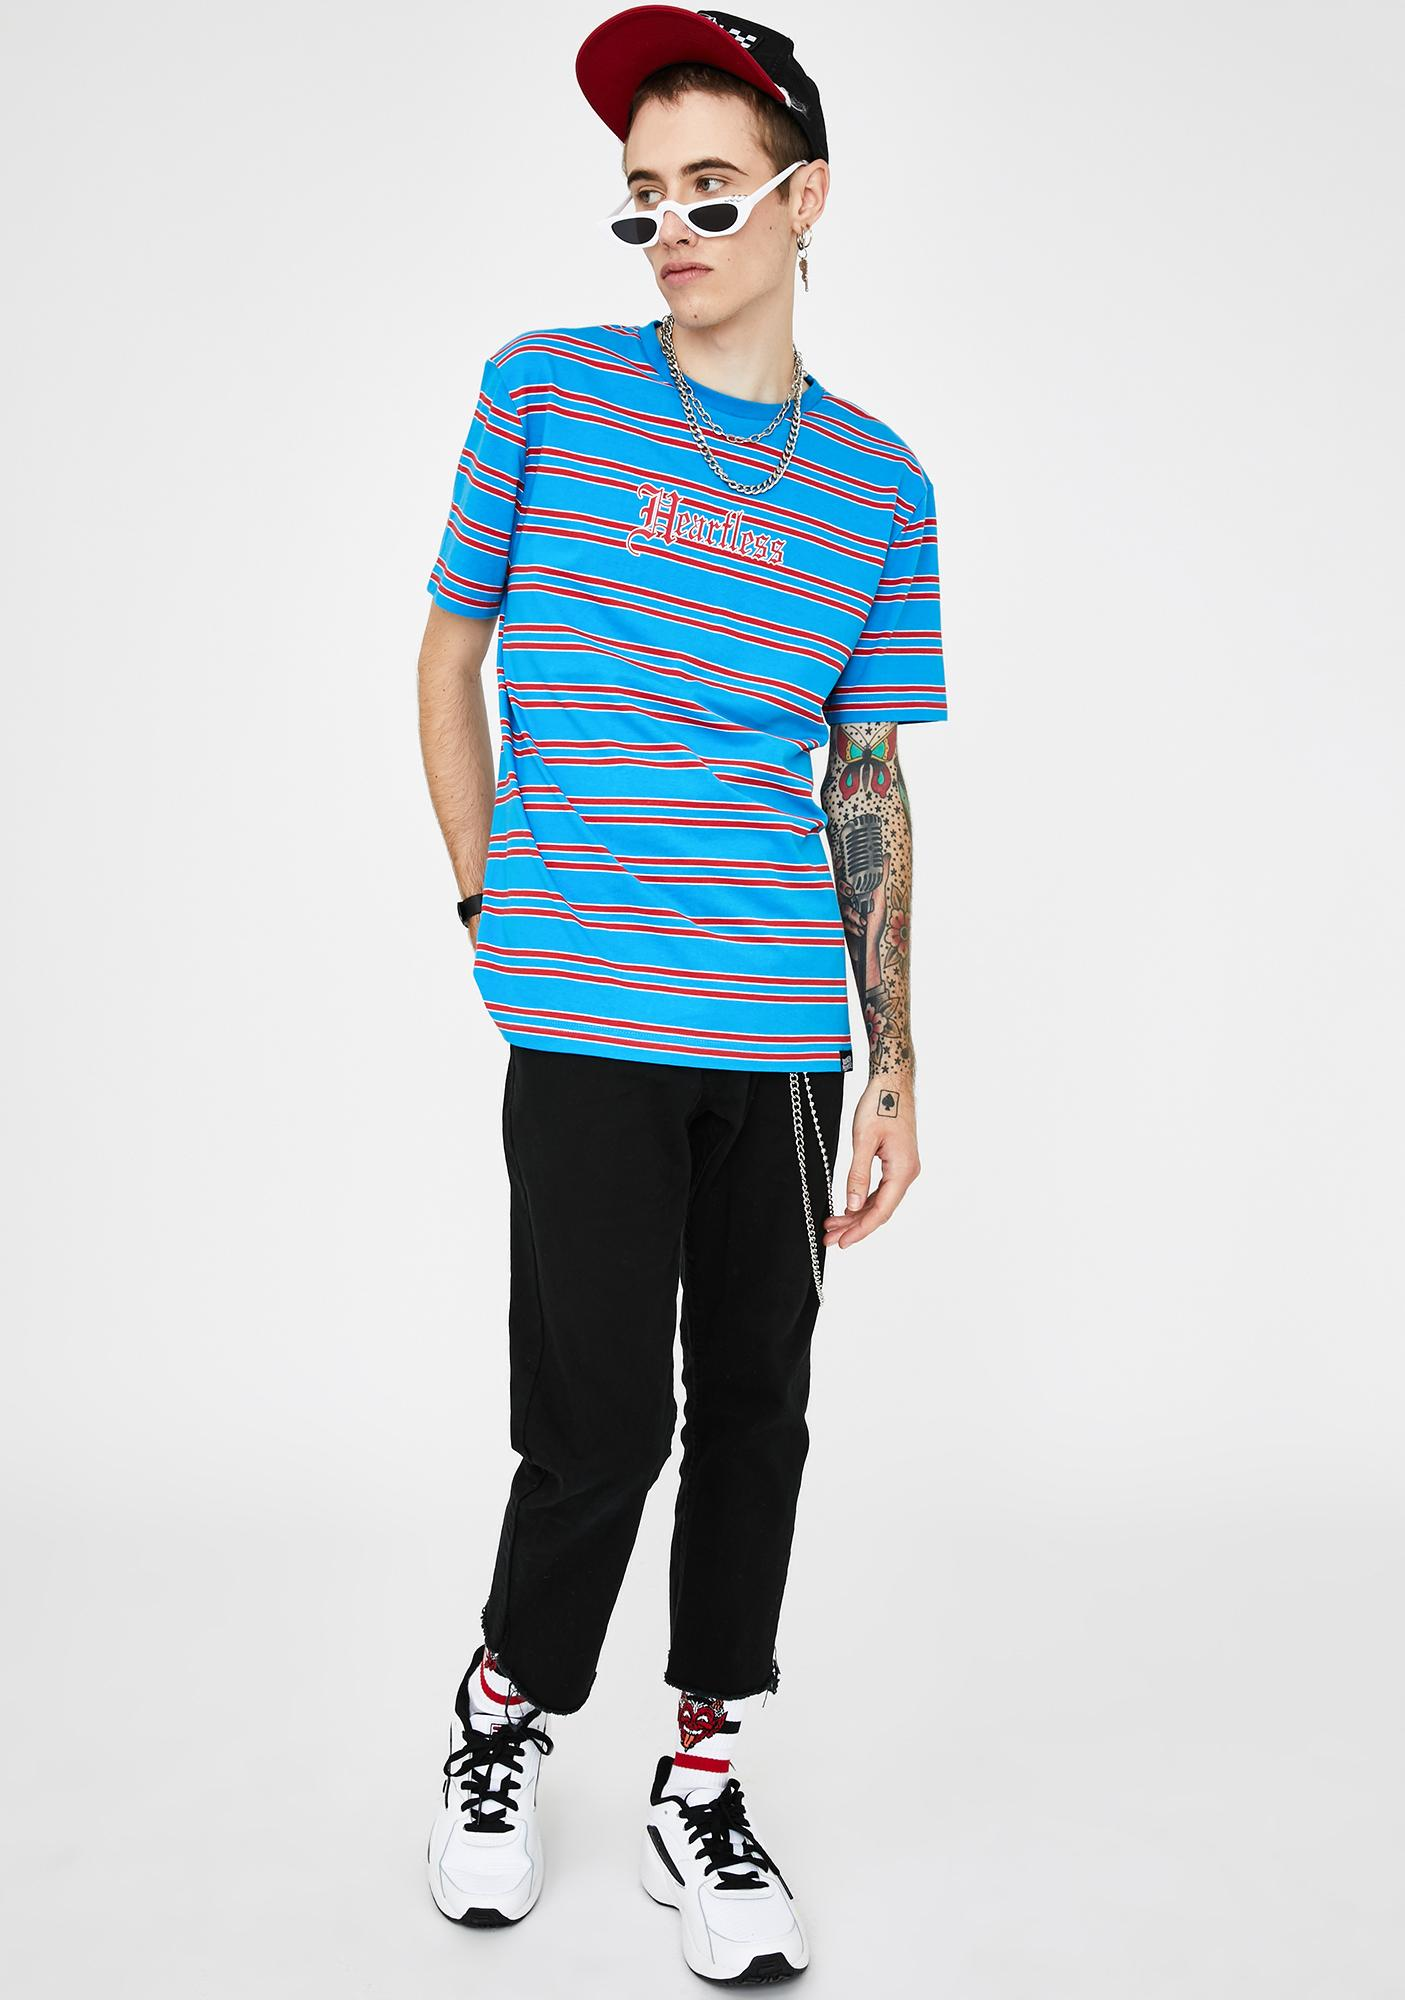 BROKEN PROMISES CO Blue Red Stripe Heartless Graphic Tee